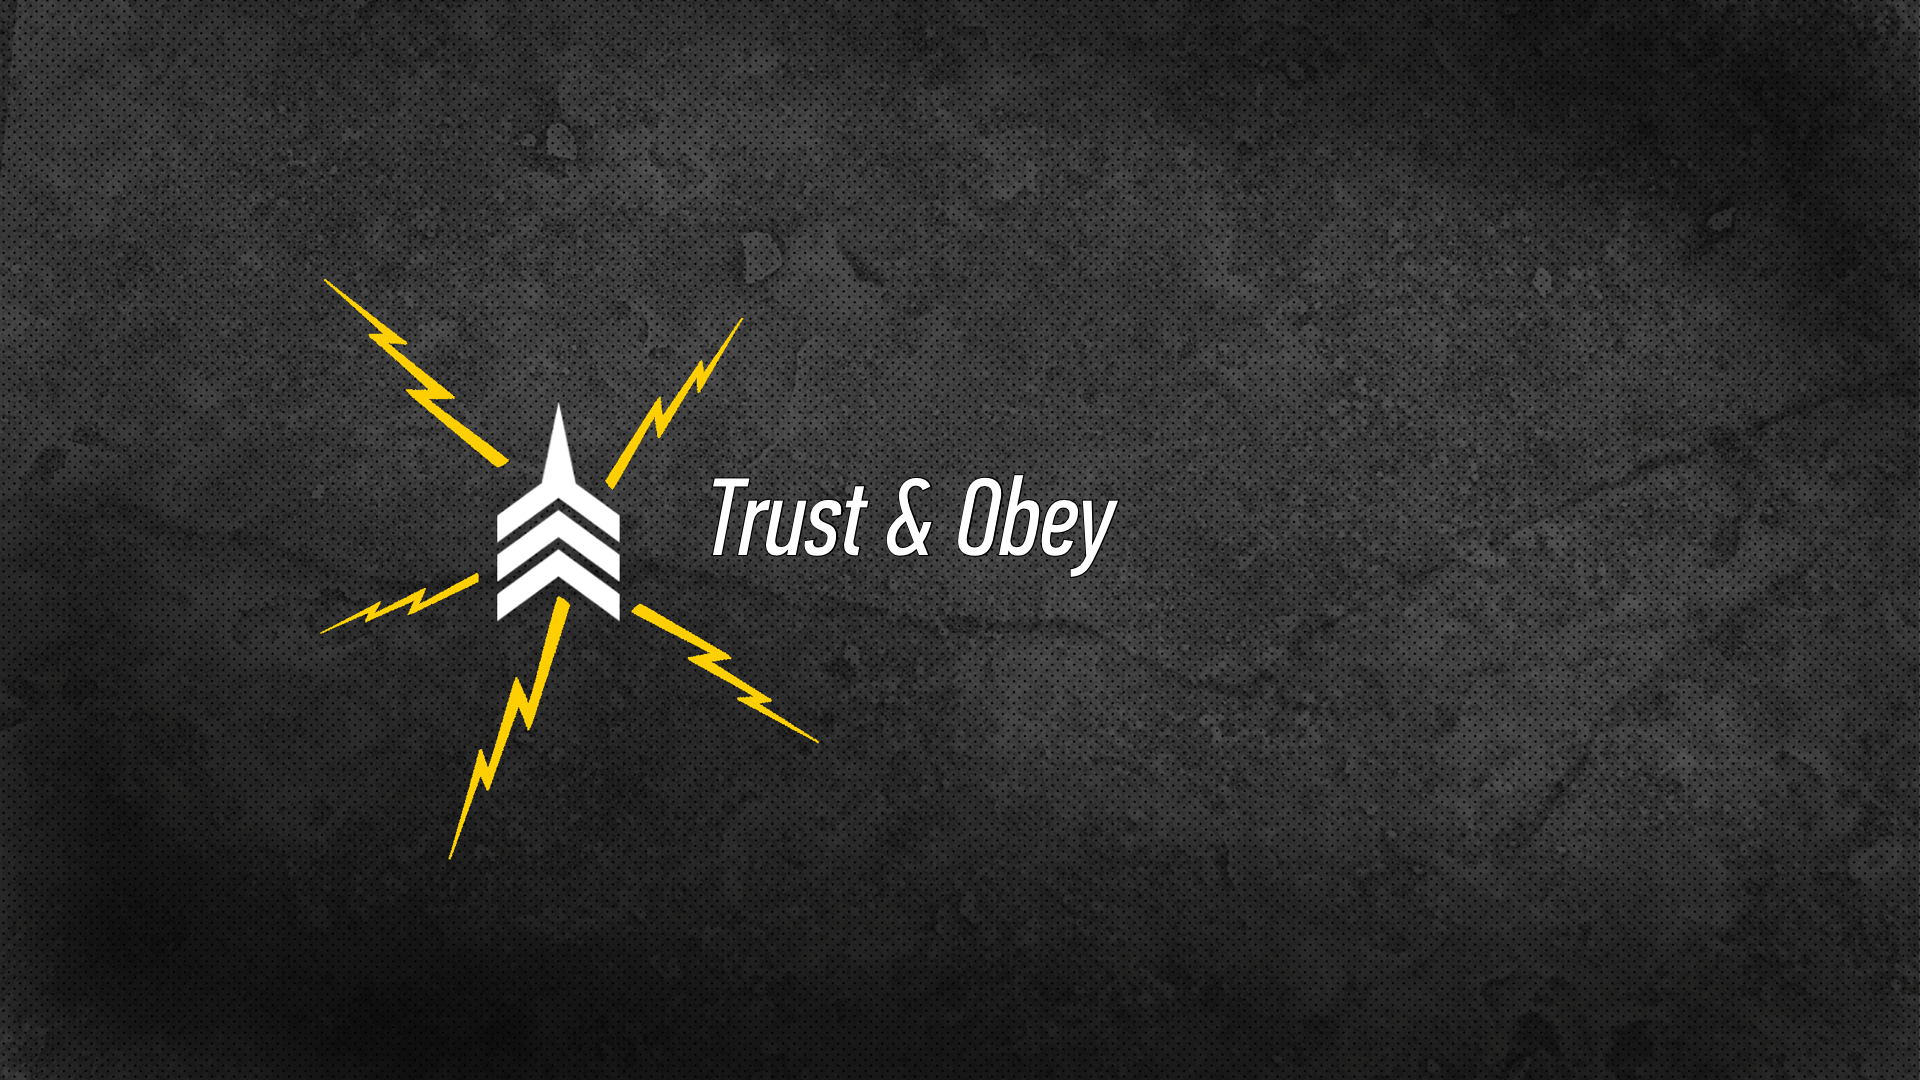 20160821 Trust & Obey.png